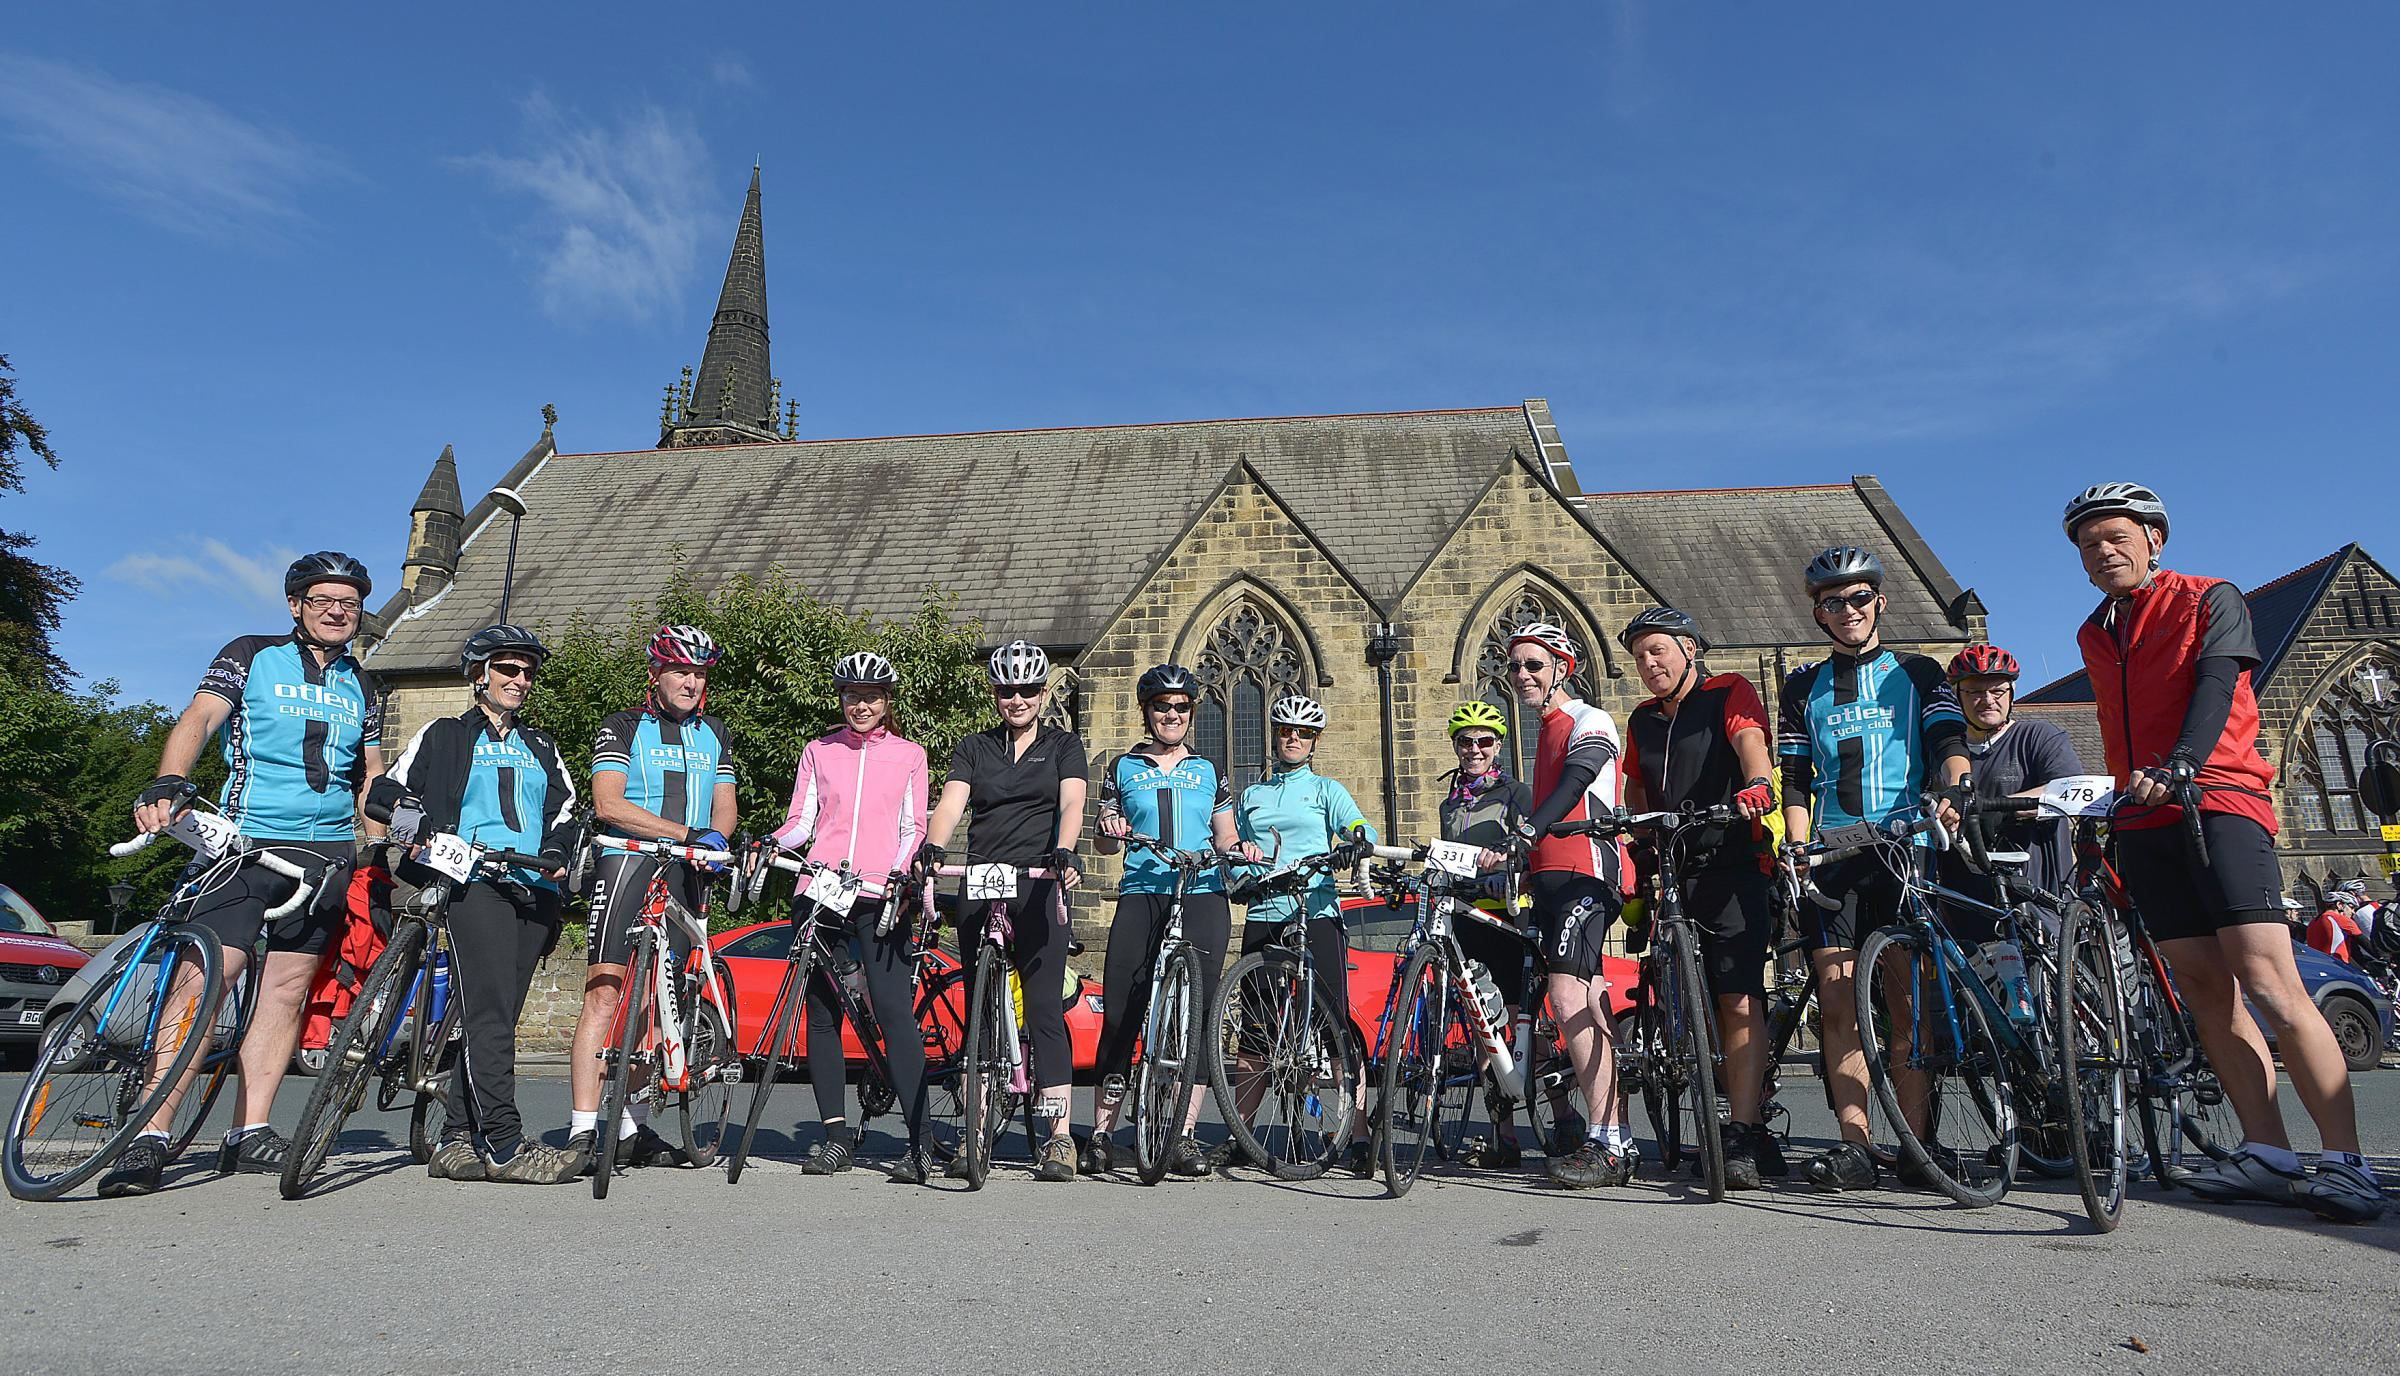 Members of Otley Cycling Club line up before the start of last year's sportive ride